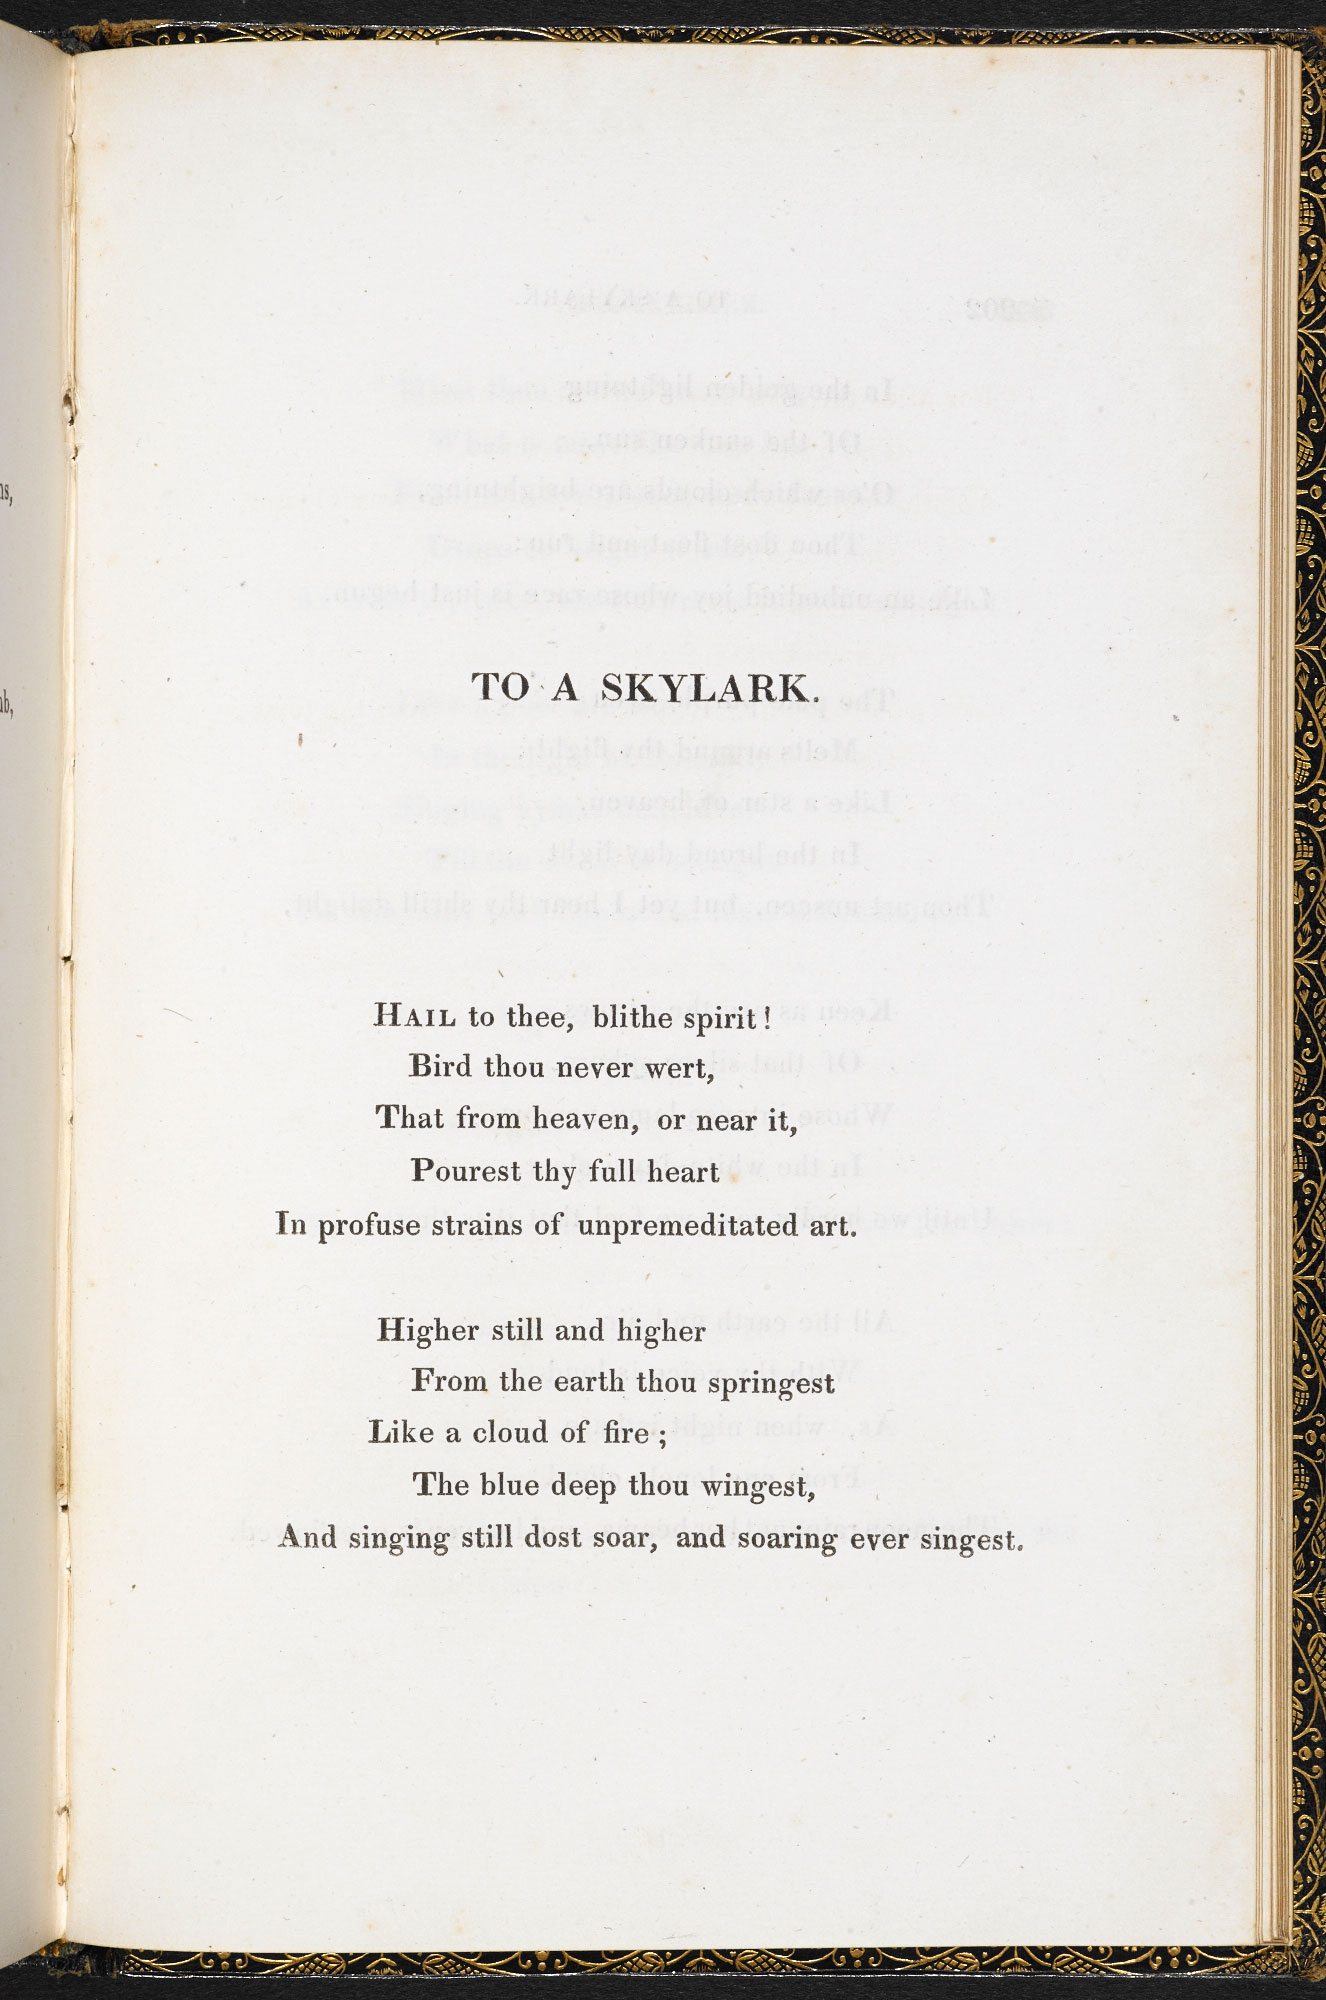 'To a Skylark' by P B Shelley